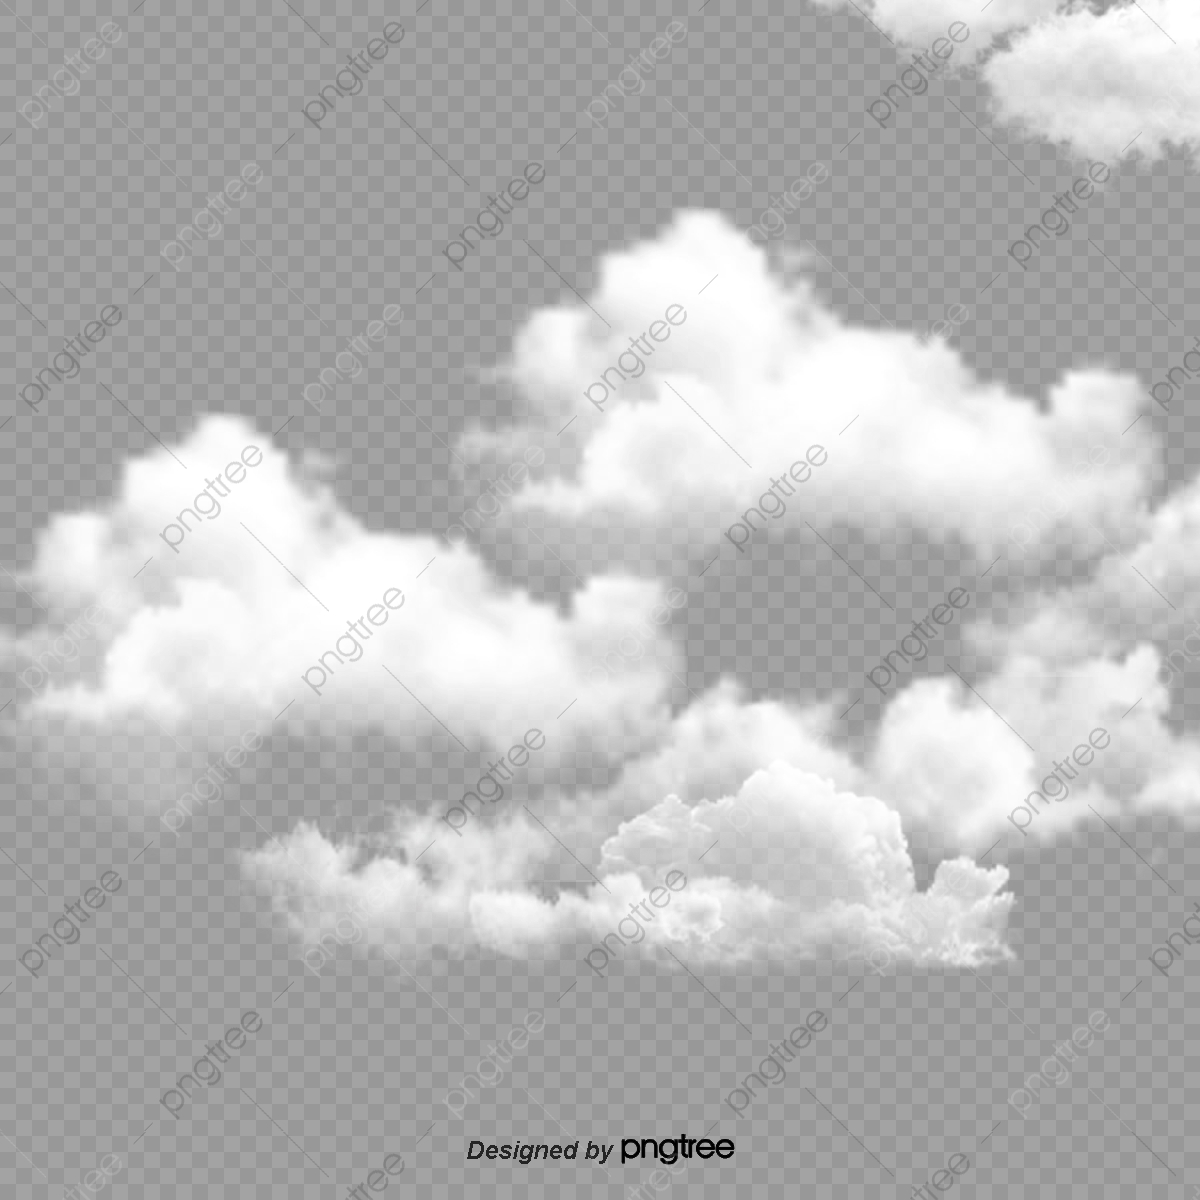 Clouds Clear Cloudy, Cloud Clipart, White Clouds, Clouds PNG.